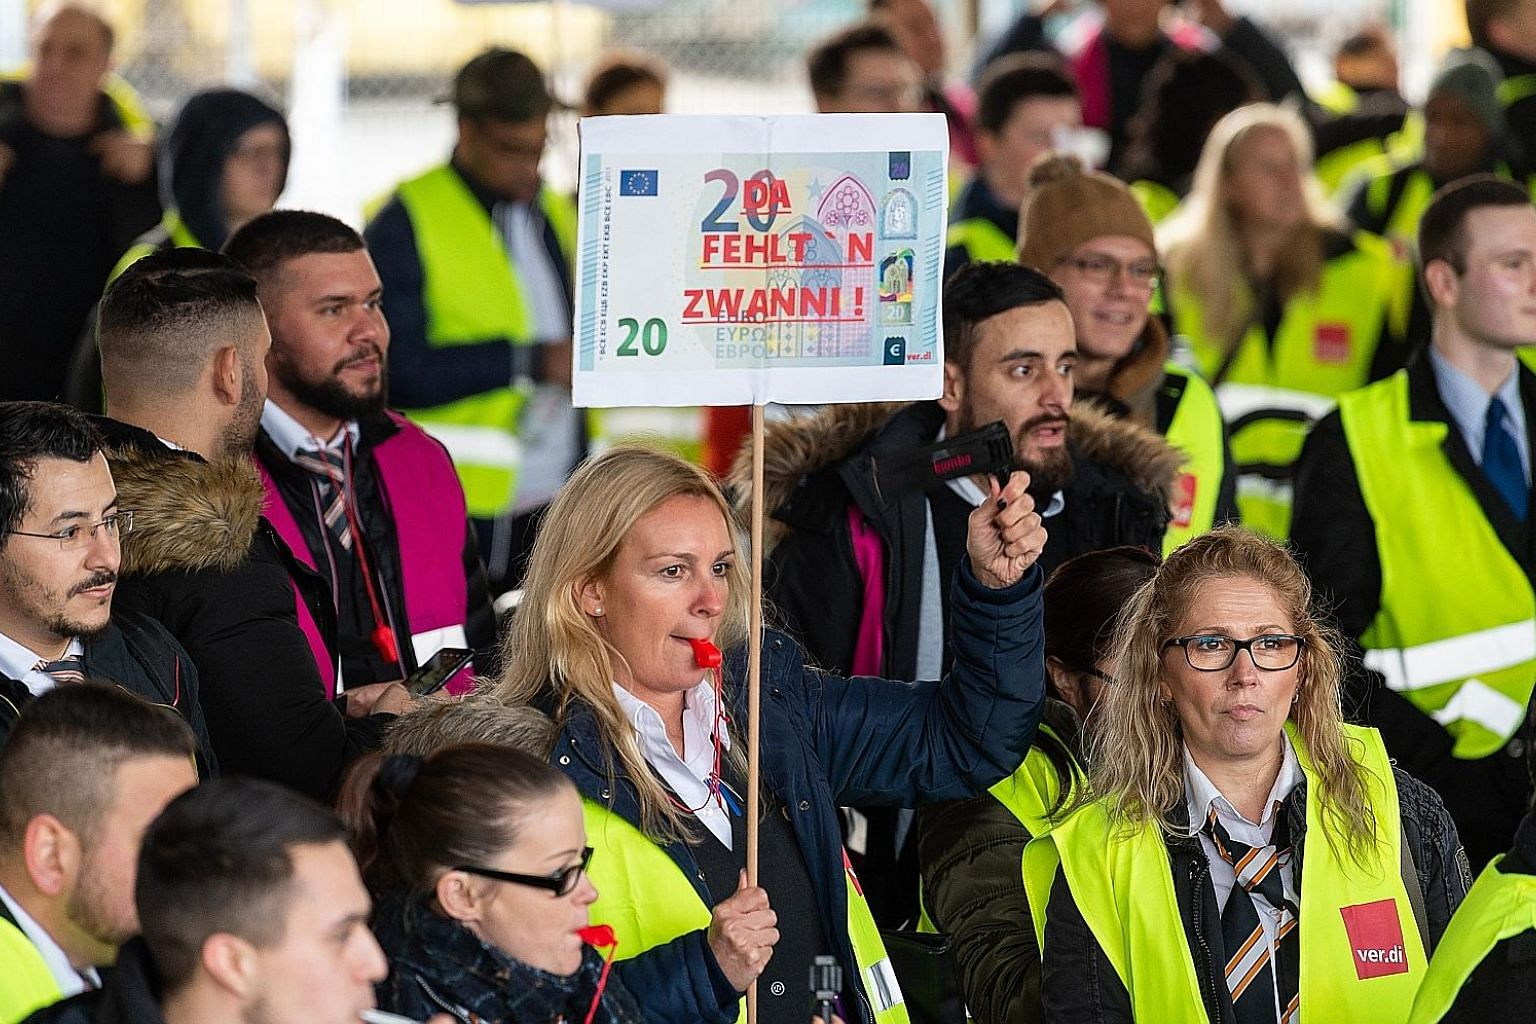 A security worker holding a sign depicting €20 during a strike at Frankfurt Airport yesterday.